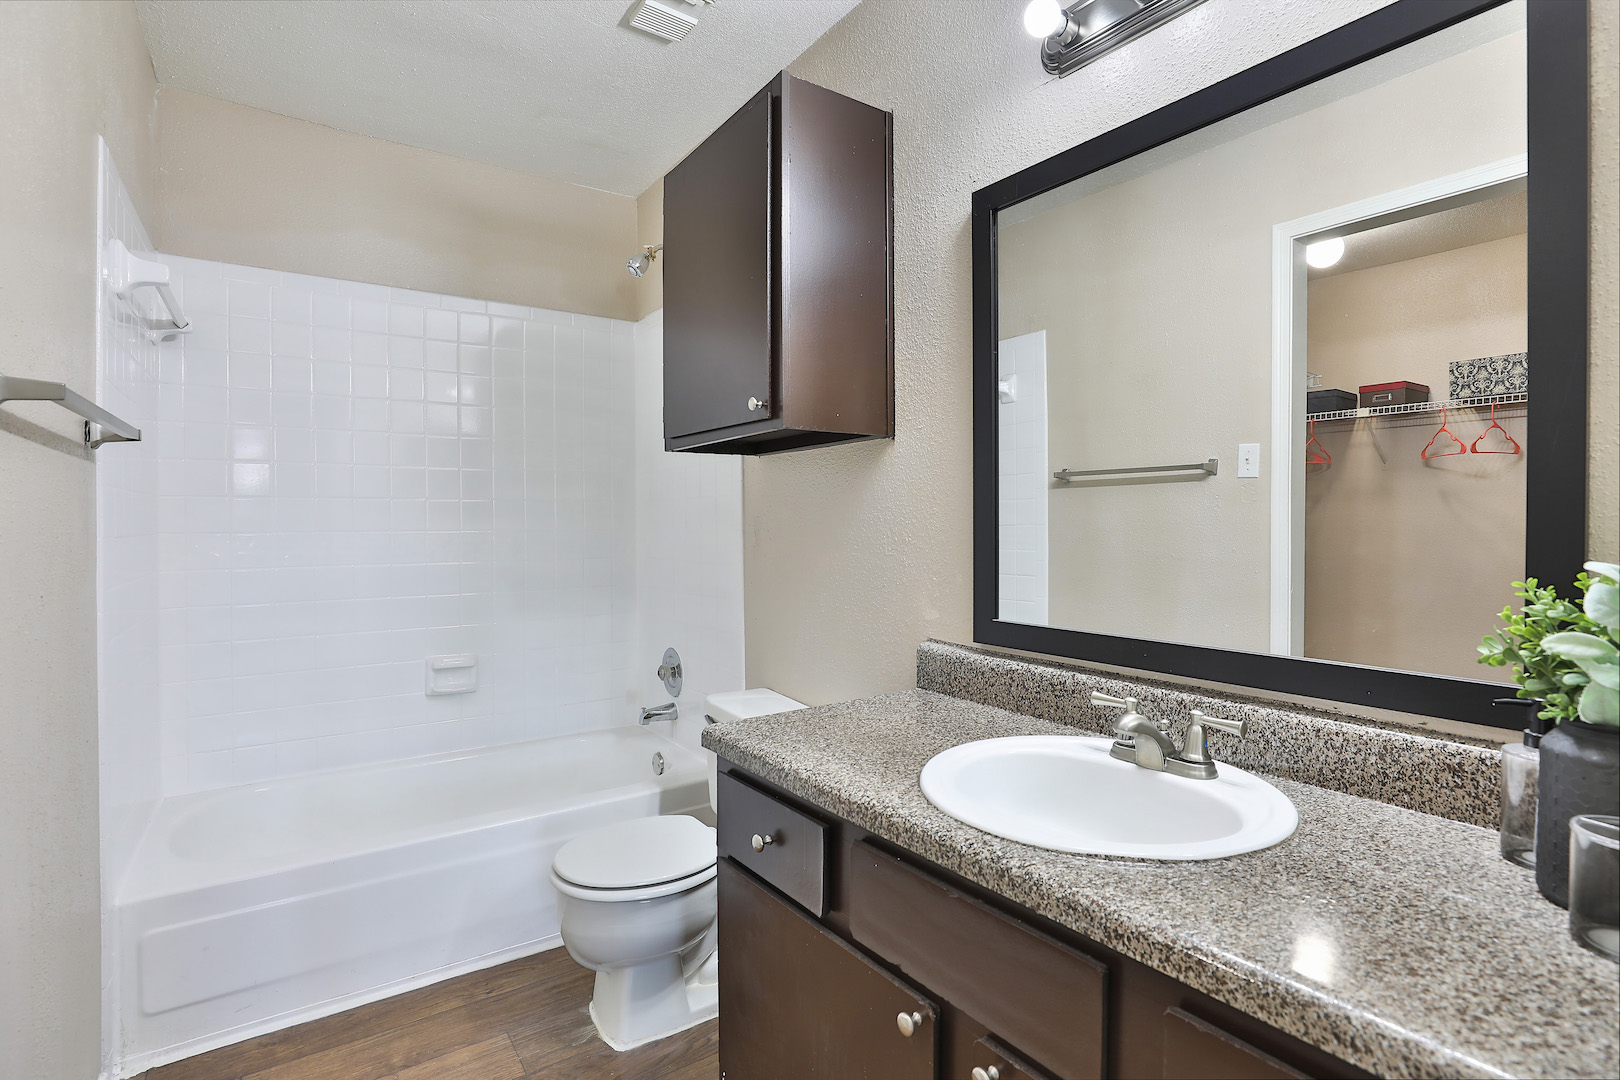 Shower and Tub at Westmount at Summer Cove Apartments in Houston, TX